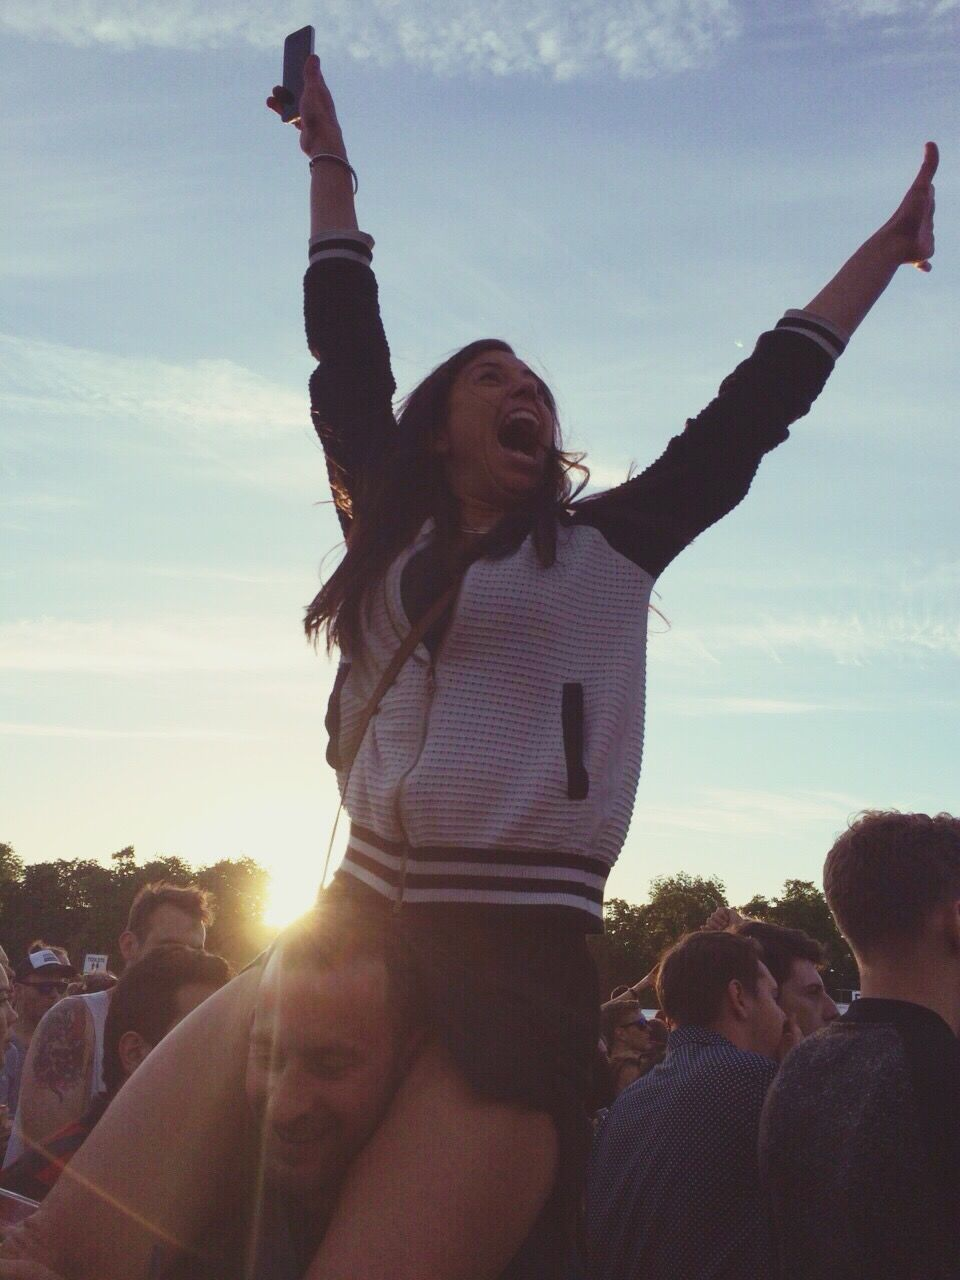 sky, real people, fun, leisure activity, enjoyment, happiness, smiling, outdoors, lifestyles, cloud - sky, day, excitement, sunset, women, cheerful, young women, young adult